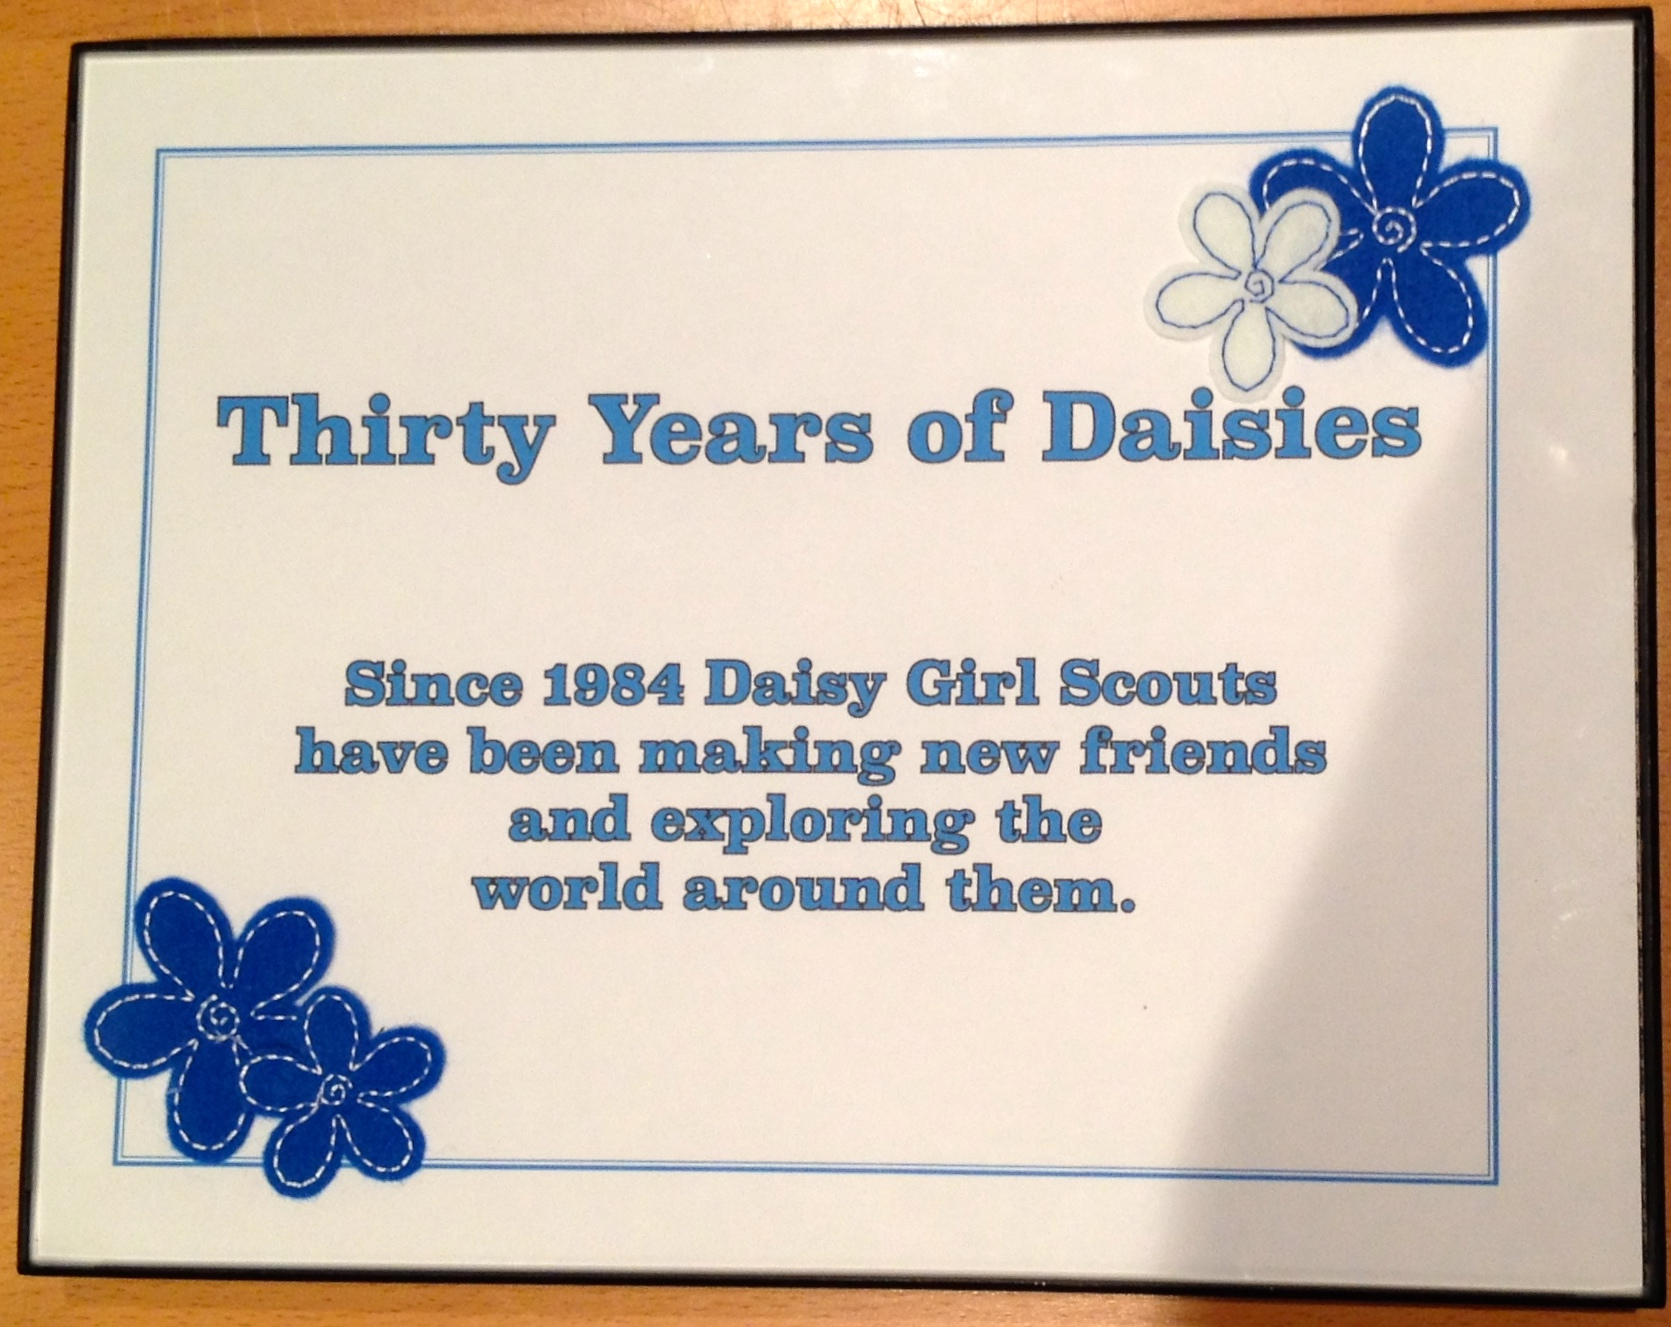 Daisy Girl Scouts Girl Scout History Project